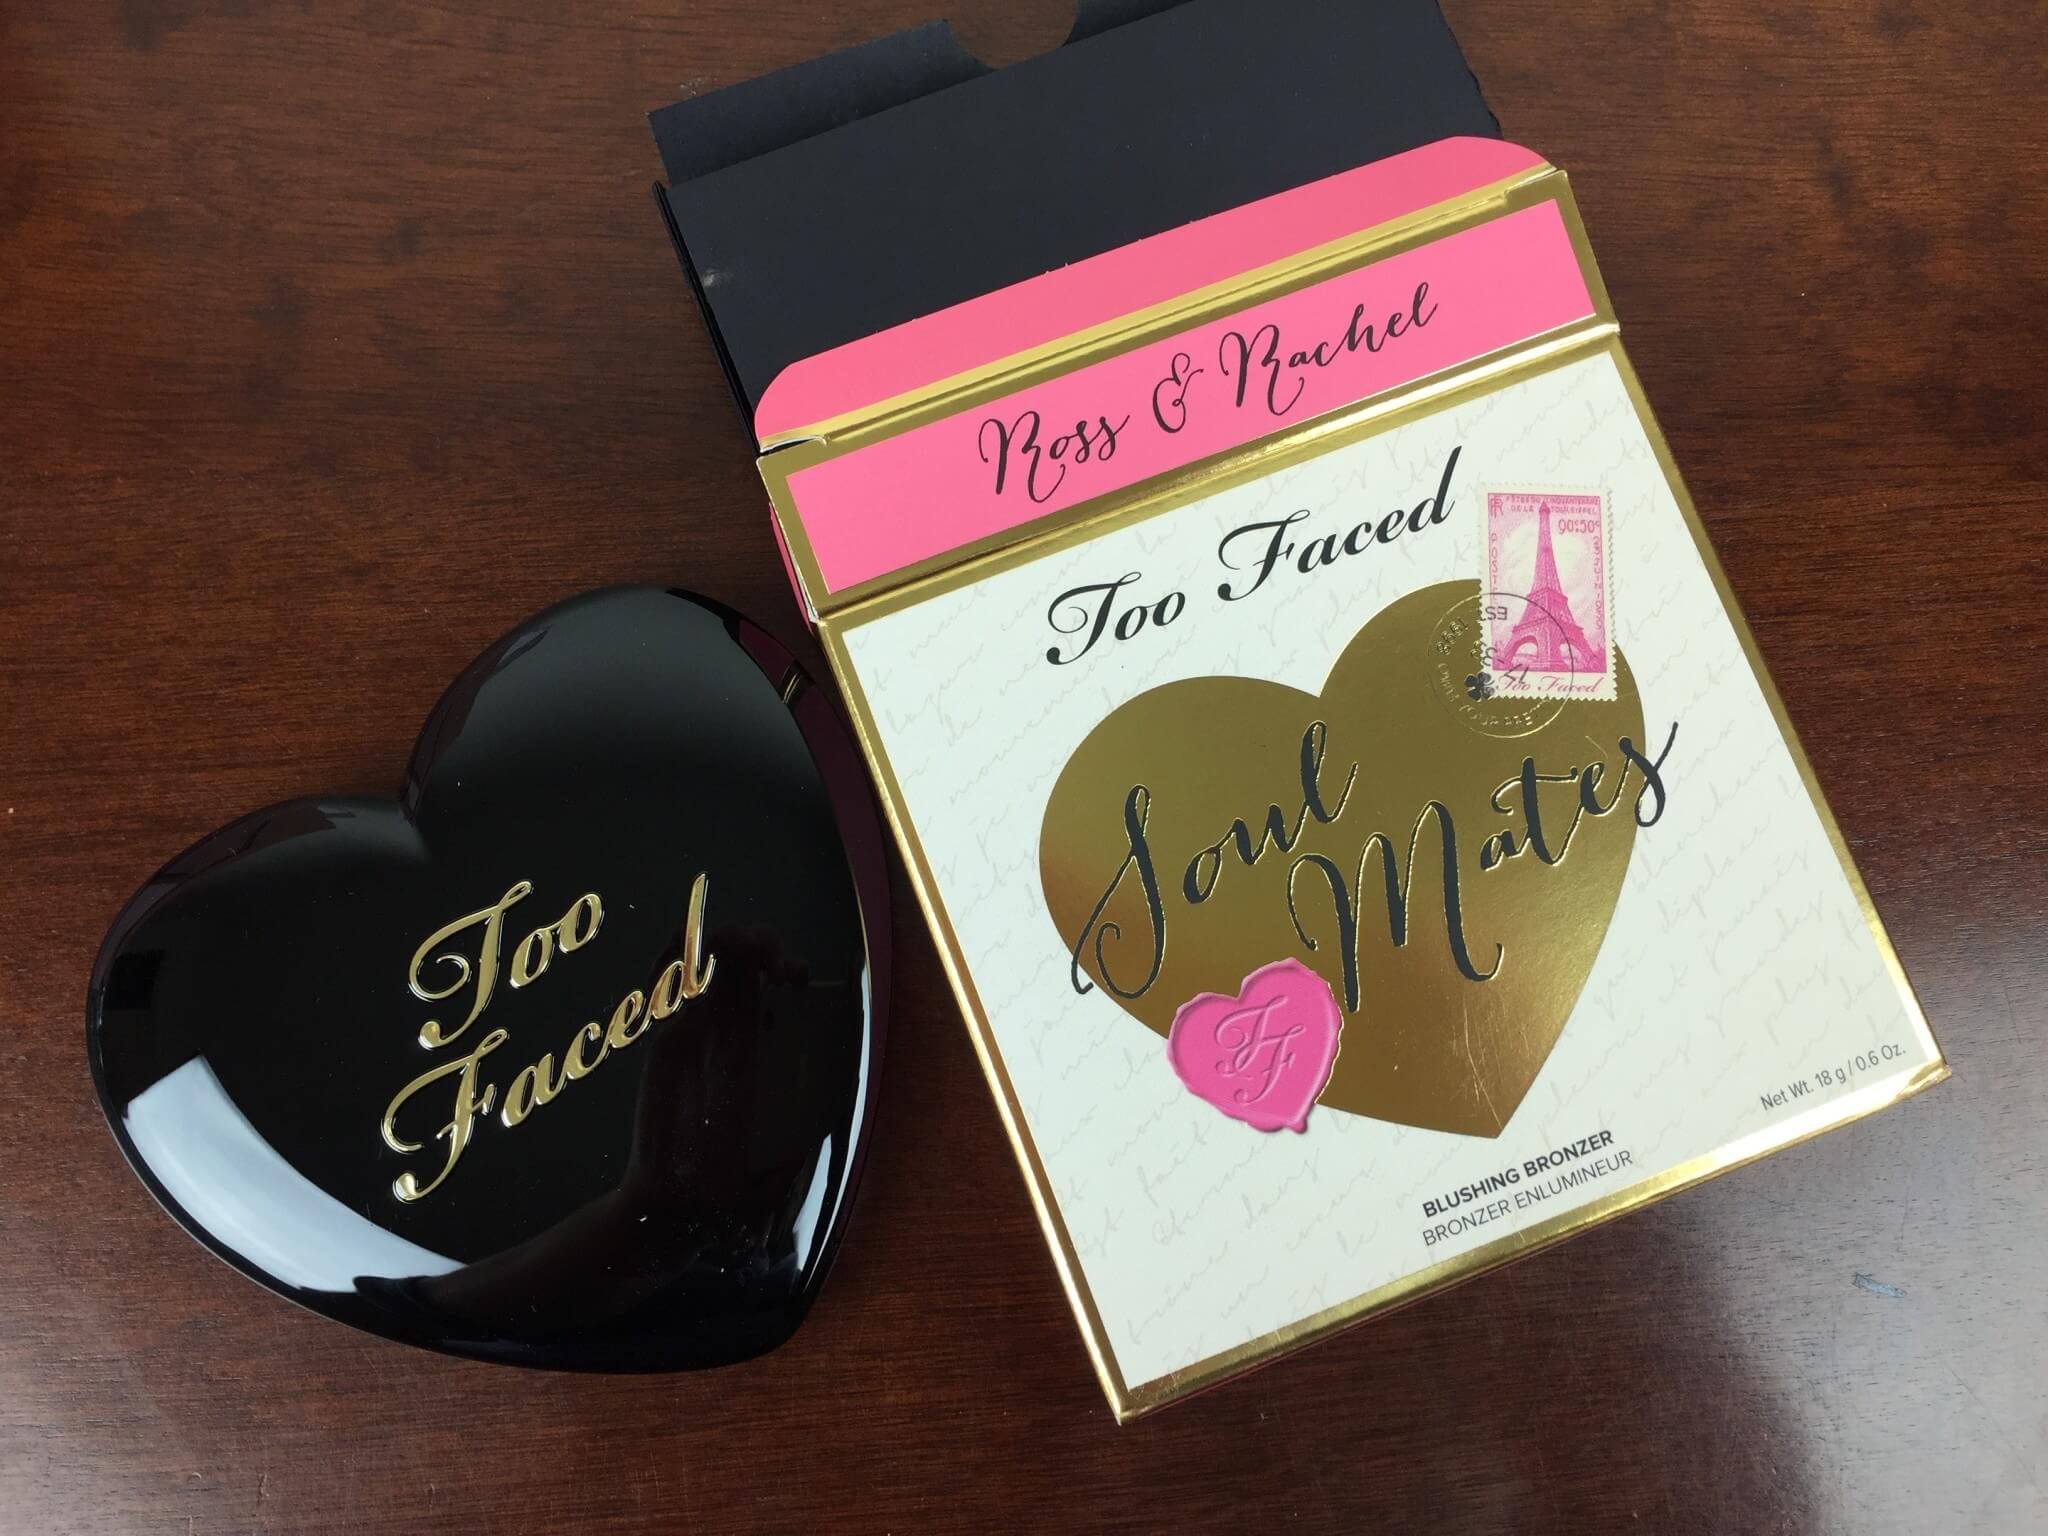 Too Faced Mystery Bag Review 2015 IMG_1598